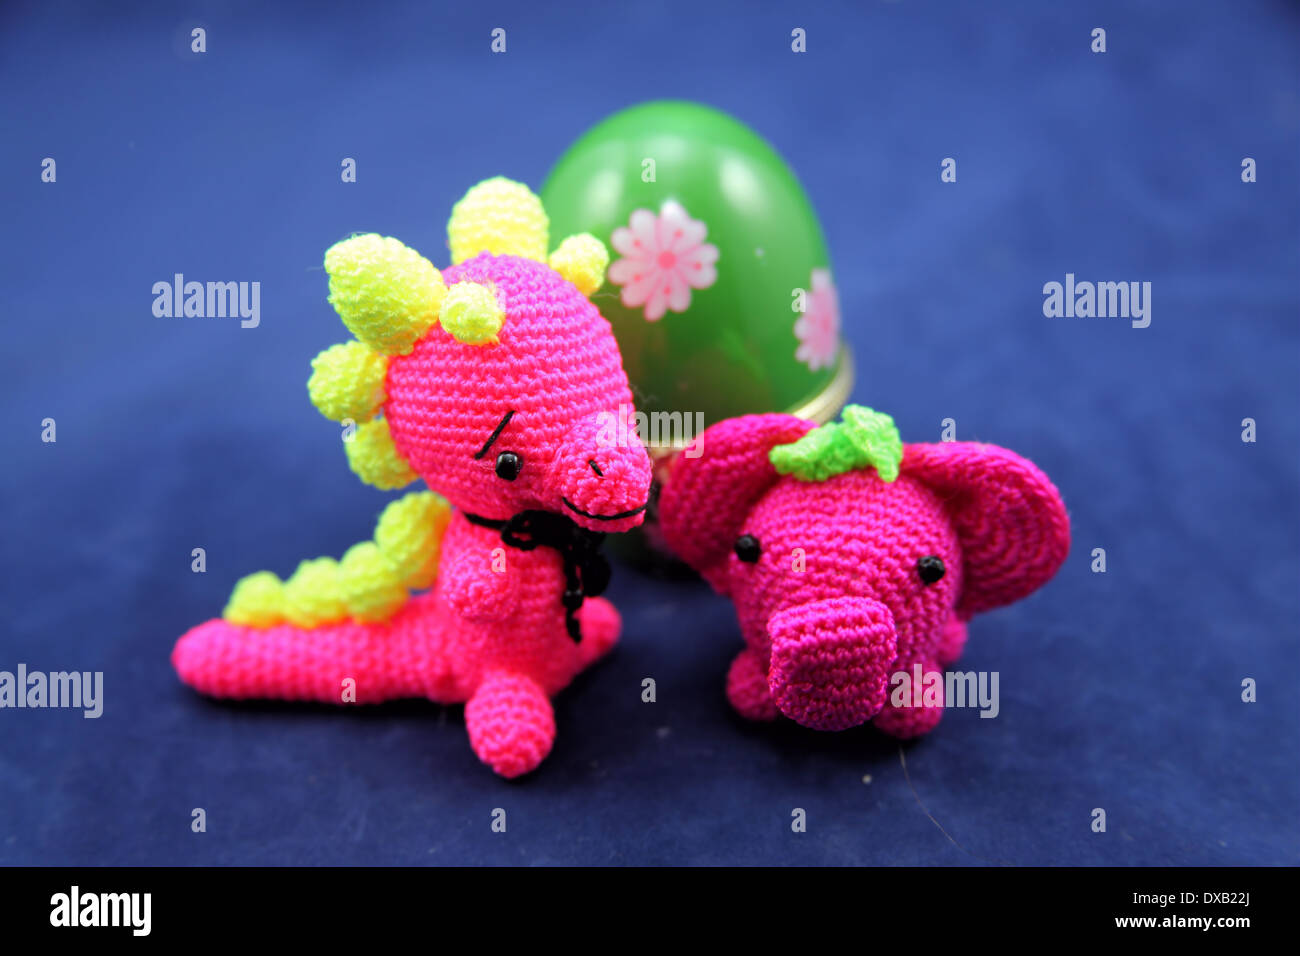 TINY KNITTED ANIMALS,TWO INCHES HIGH - Stock Image